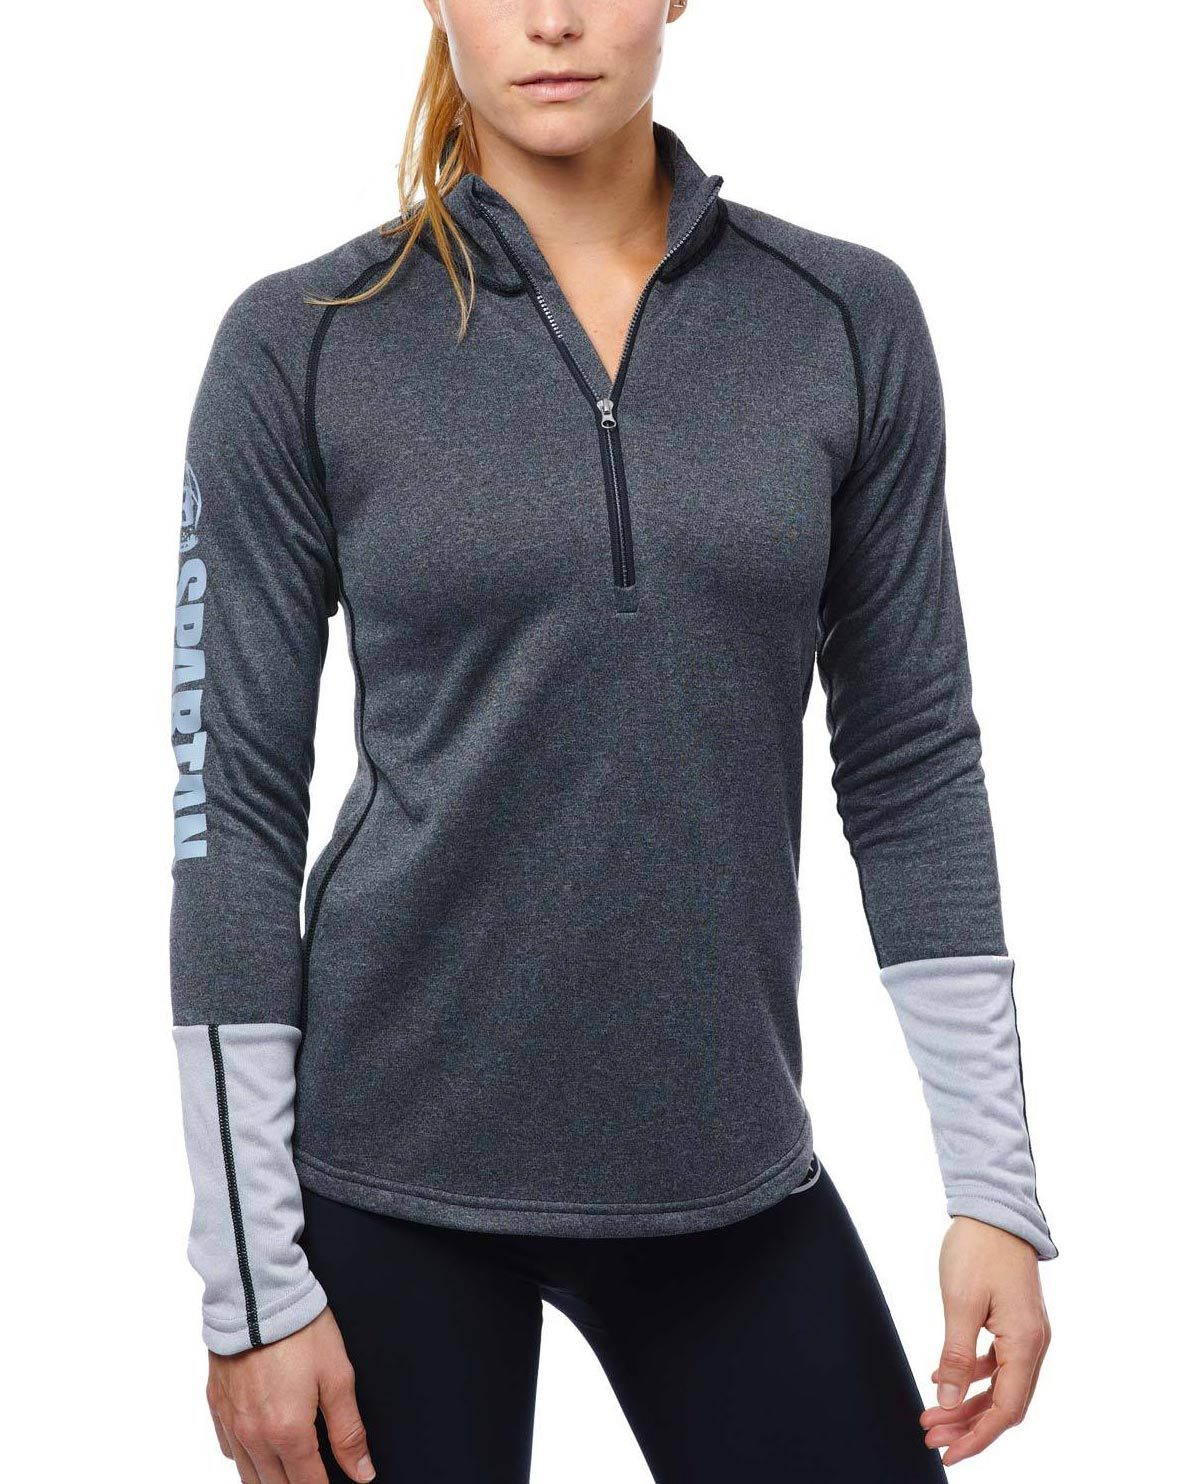 CRAFT SPARTAN By CRAFT Spark Pullover - Women's Black/Gray XS